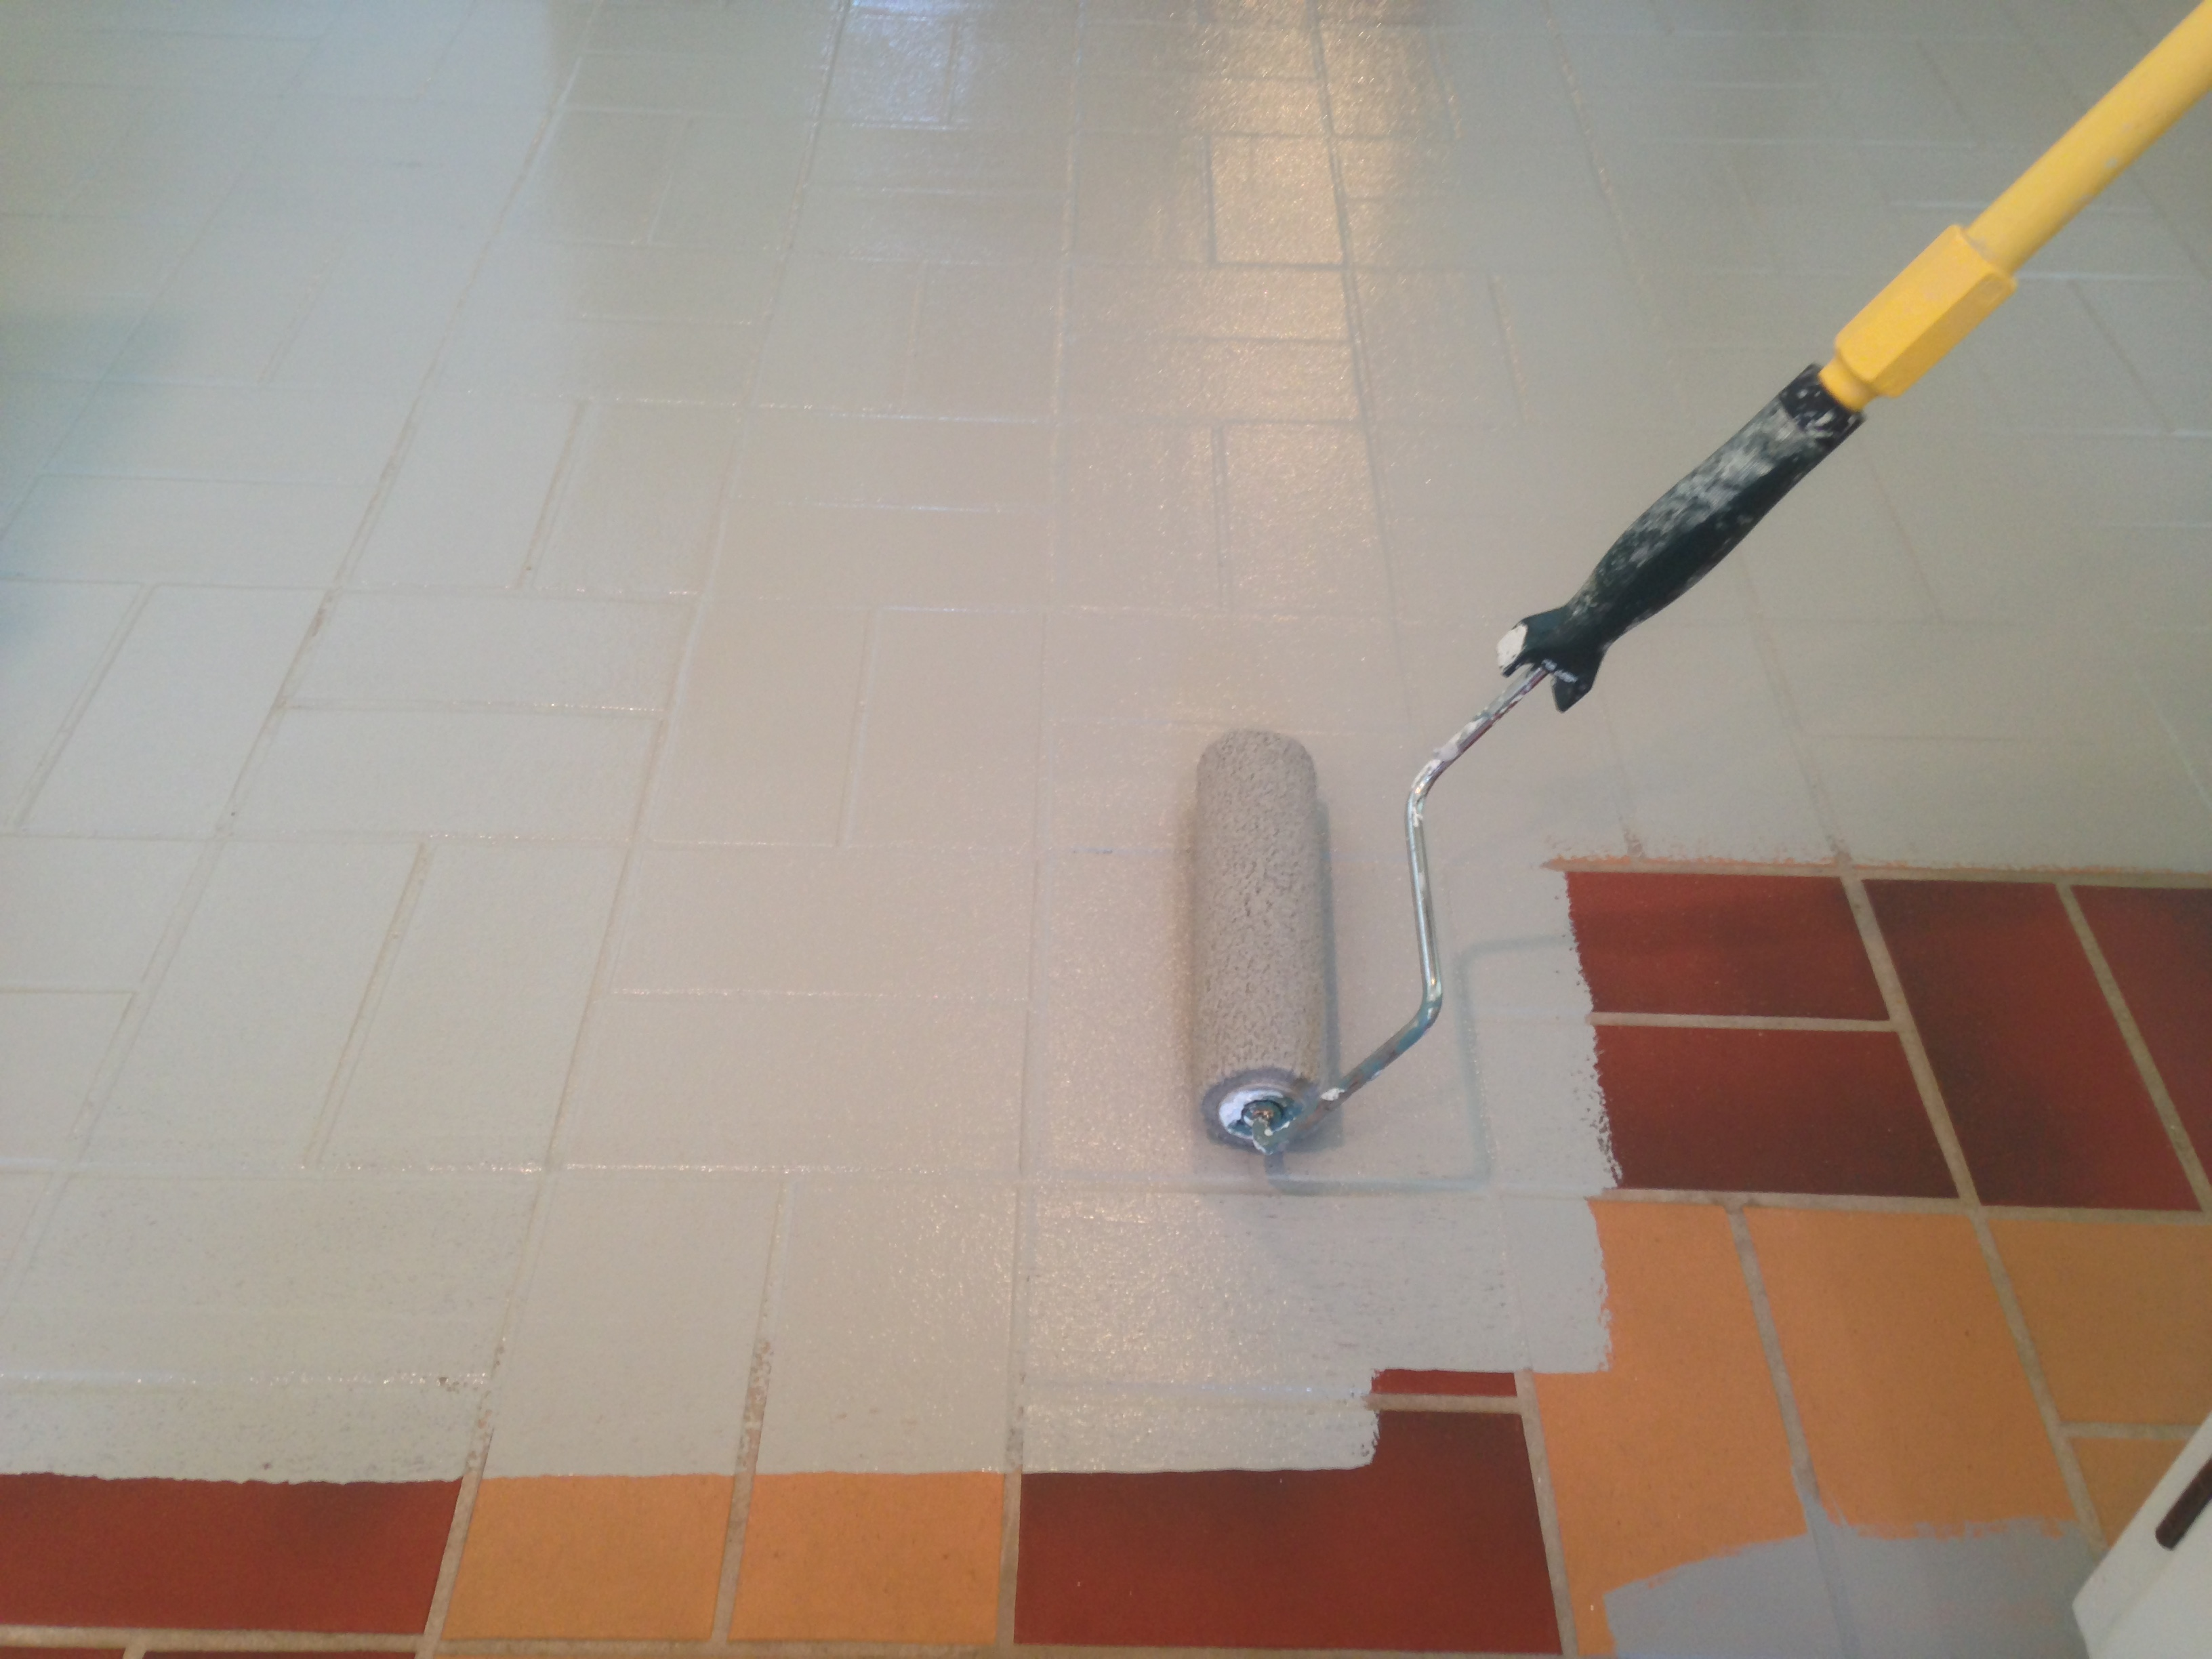 Pet safe and clean at a cost that is lean painting floors can save painted kitchen floor during with just add paint in mechanicsburg pa 17055 dailygadgetfo Images